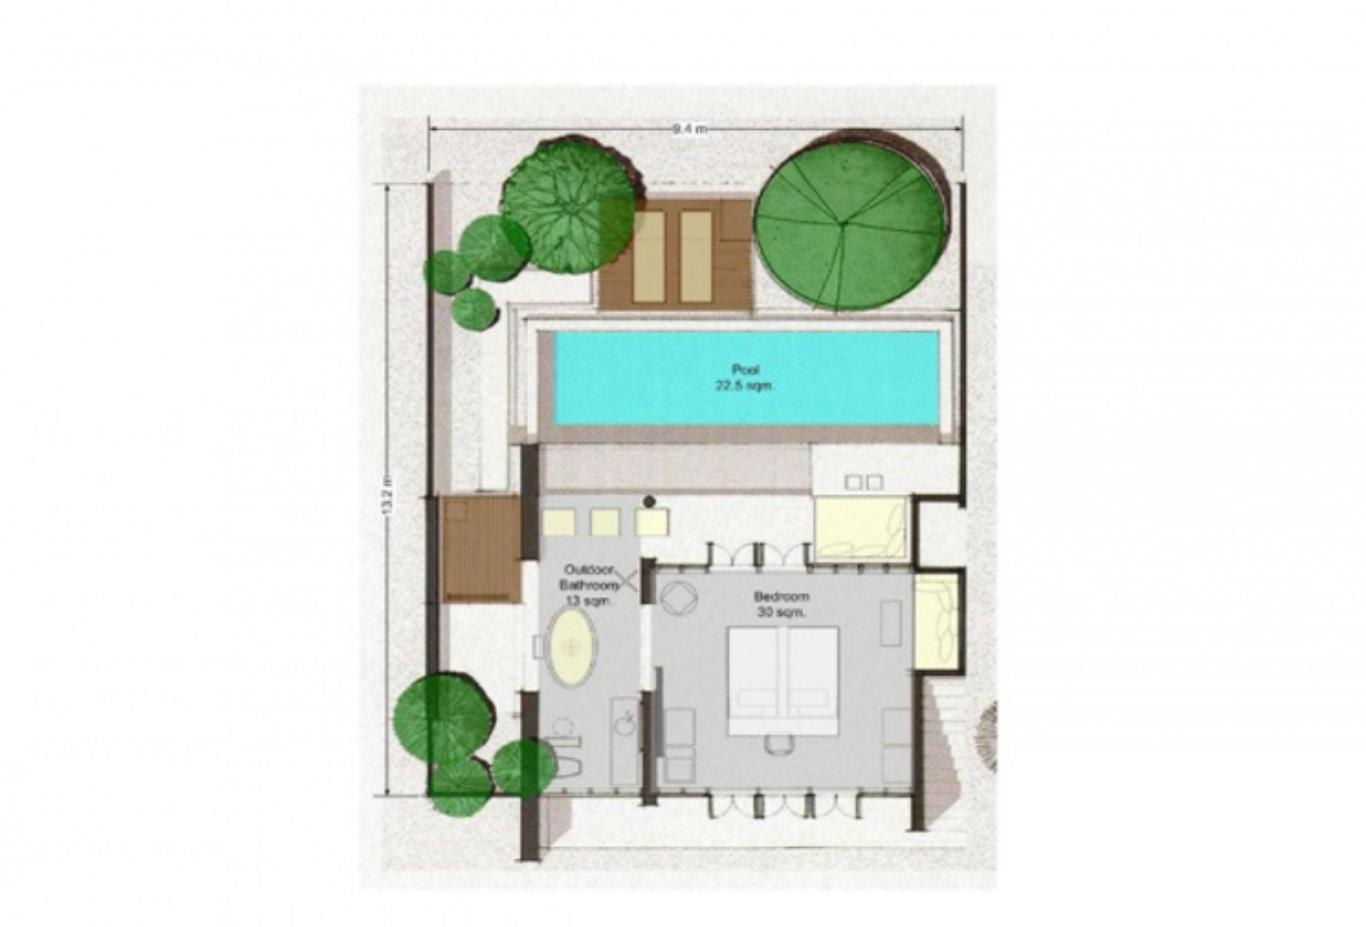 Garden Pool Villa floorplan